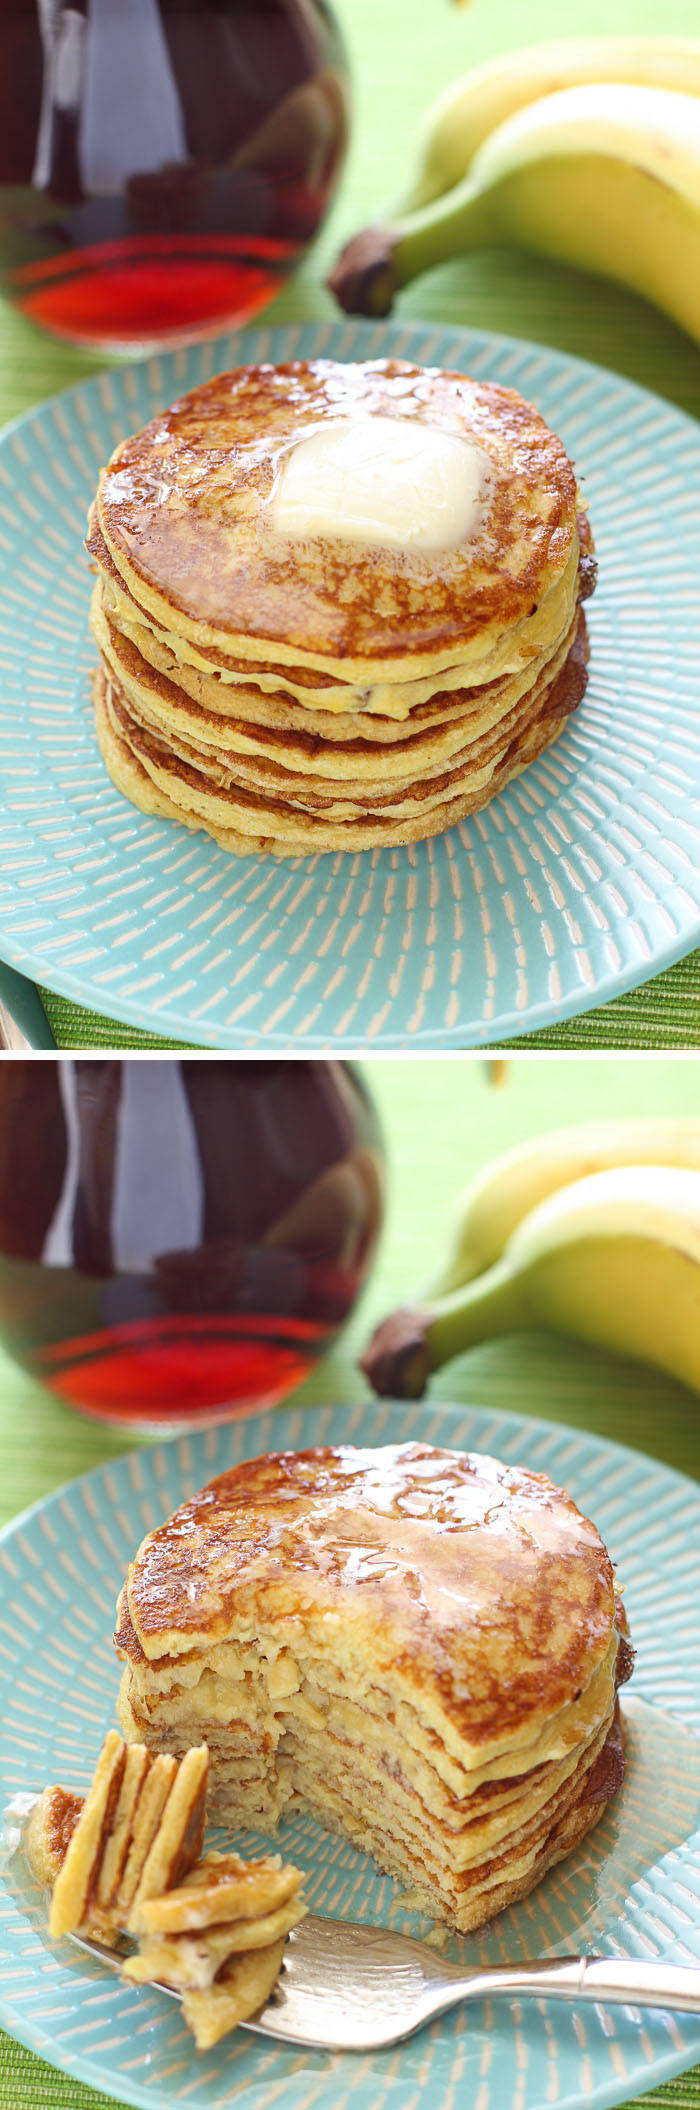 Protein Banana Pancakes  Four Ingre nt Protein Pancakes and 16 other simple